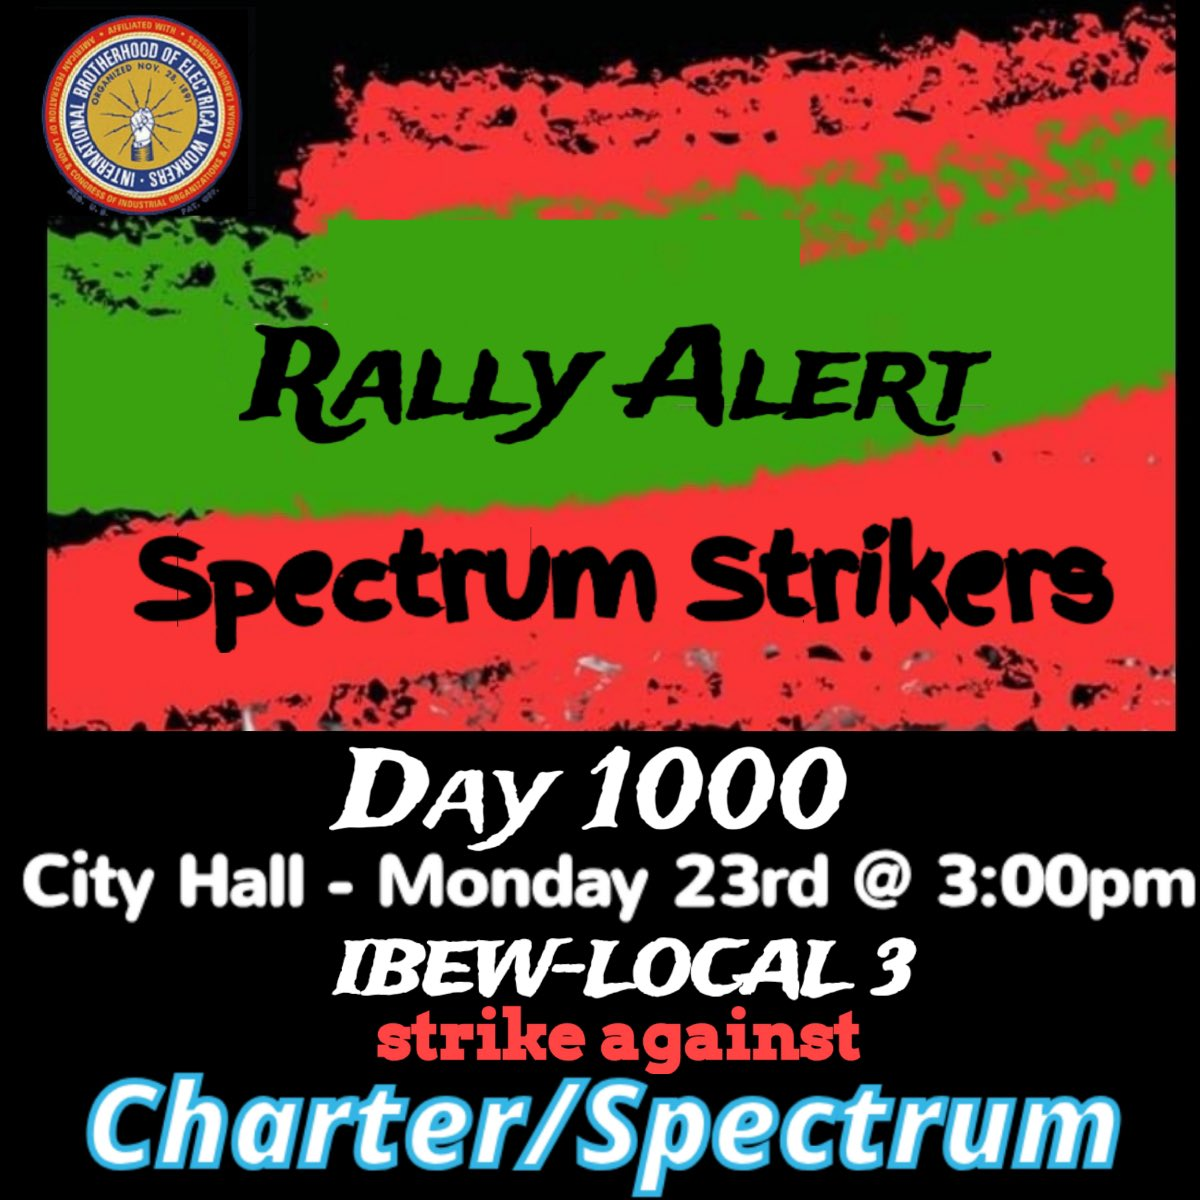 I'd love to see all of you at city hall Monday dec 23 3PM to rally for #SpectrumStrike. Middle class workers who have been walking the picket line for almost 3 years.  Stand with workers against Corp greed @MarcelaforNy.  https:// twitter.com/marcelaforny/s tatus/1203454451358601216  … <br>http://pic.twitter.com/p8thL7OnpR